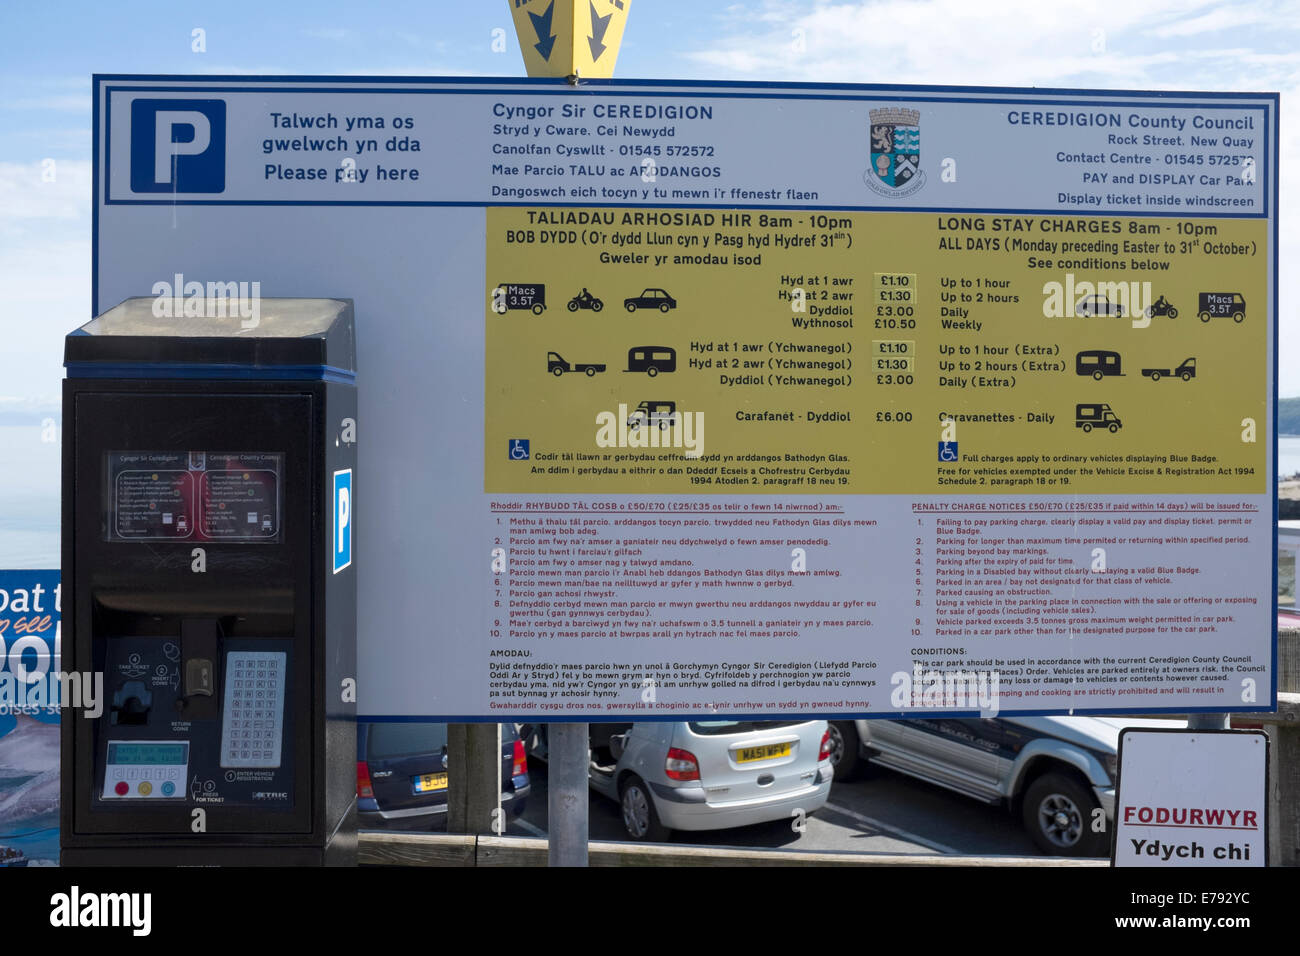 Ceredigion County Council English Welsh Car Park Tariff Sign - Stock Image